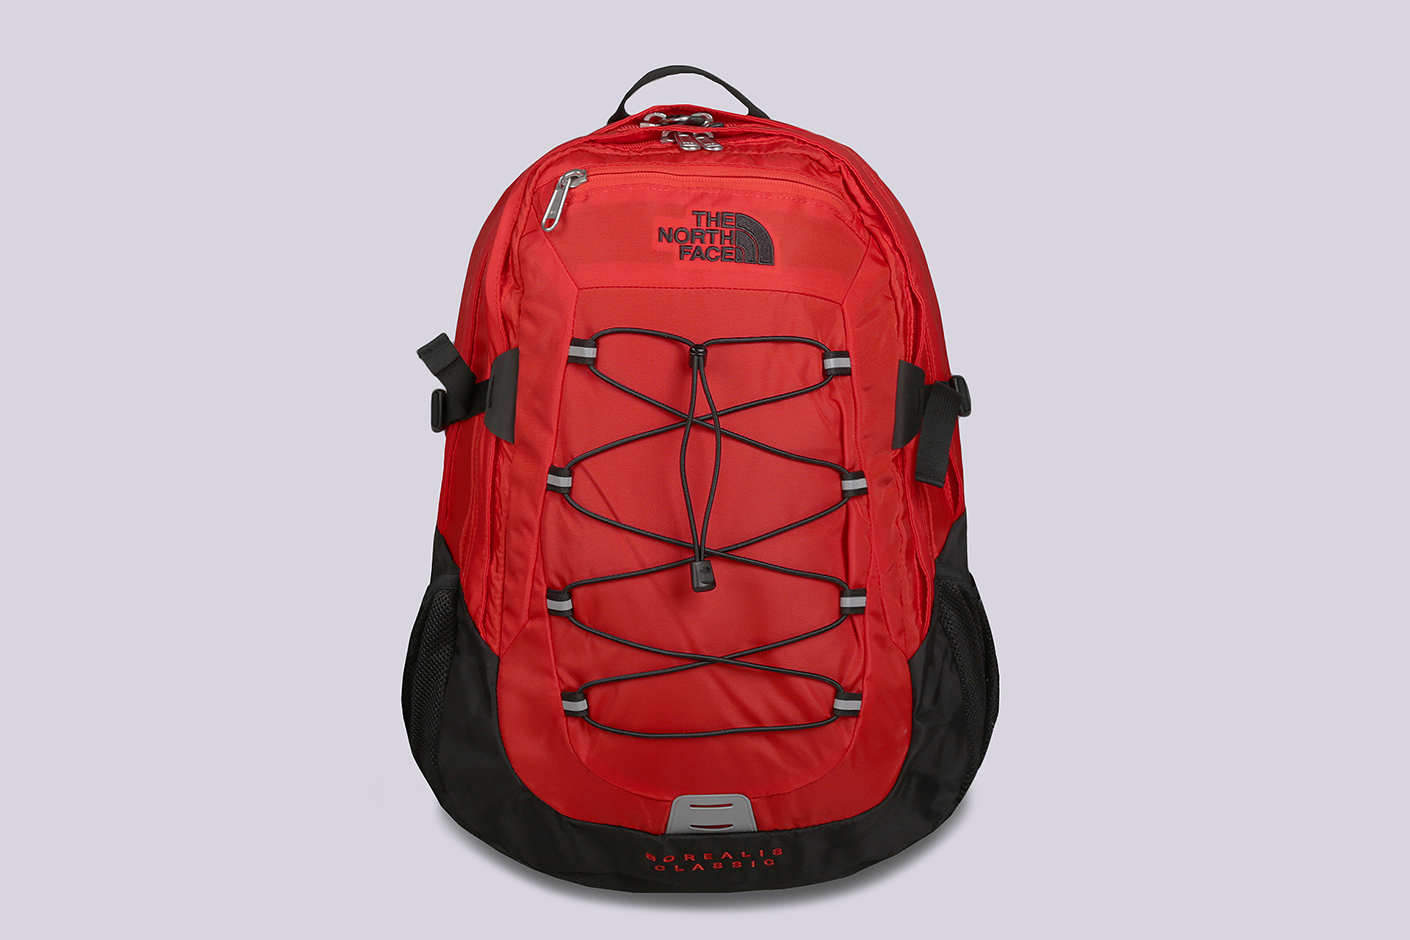 красный рюкзак The North Face Borealis Classic 27L